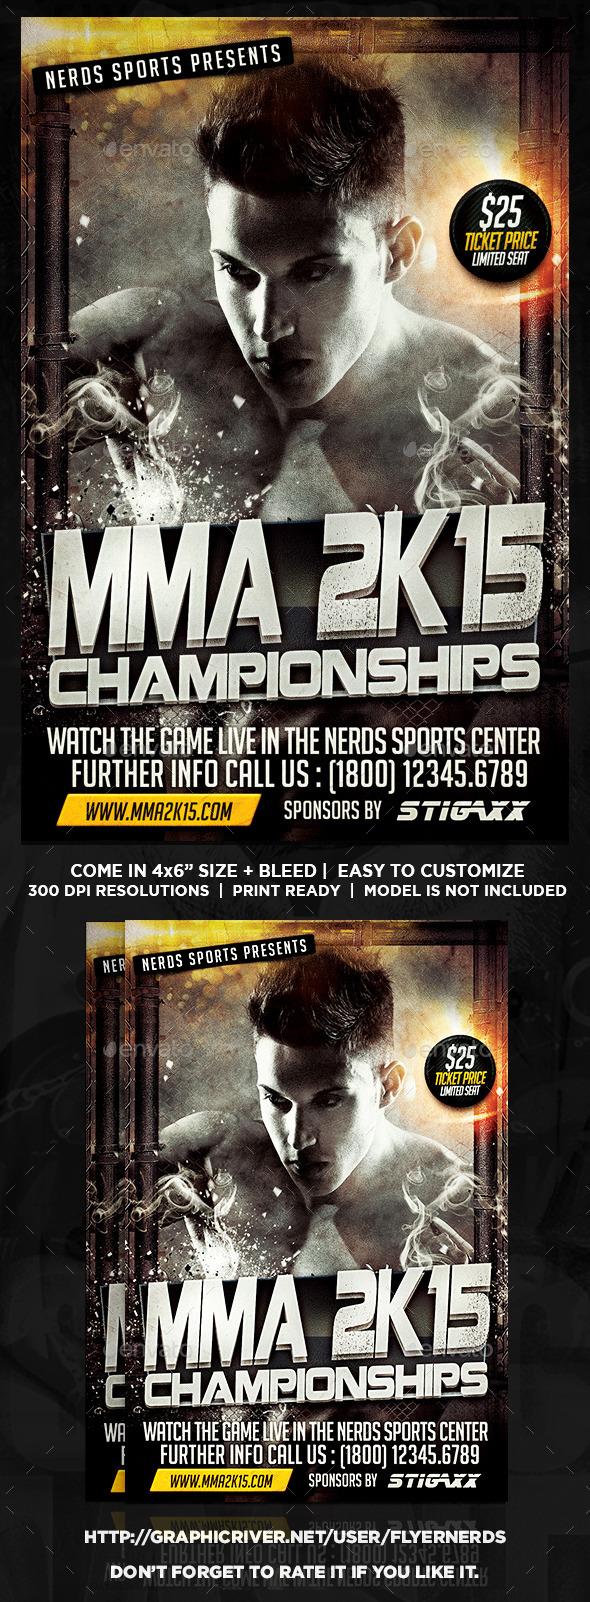 GraphicRiver MMA 2K15 Championships Sports Flyer 10050743